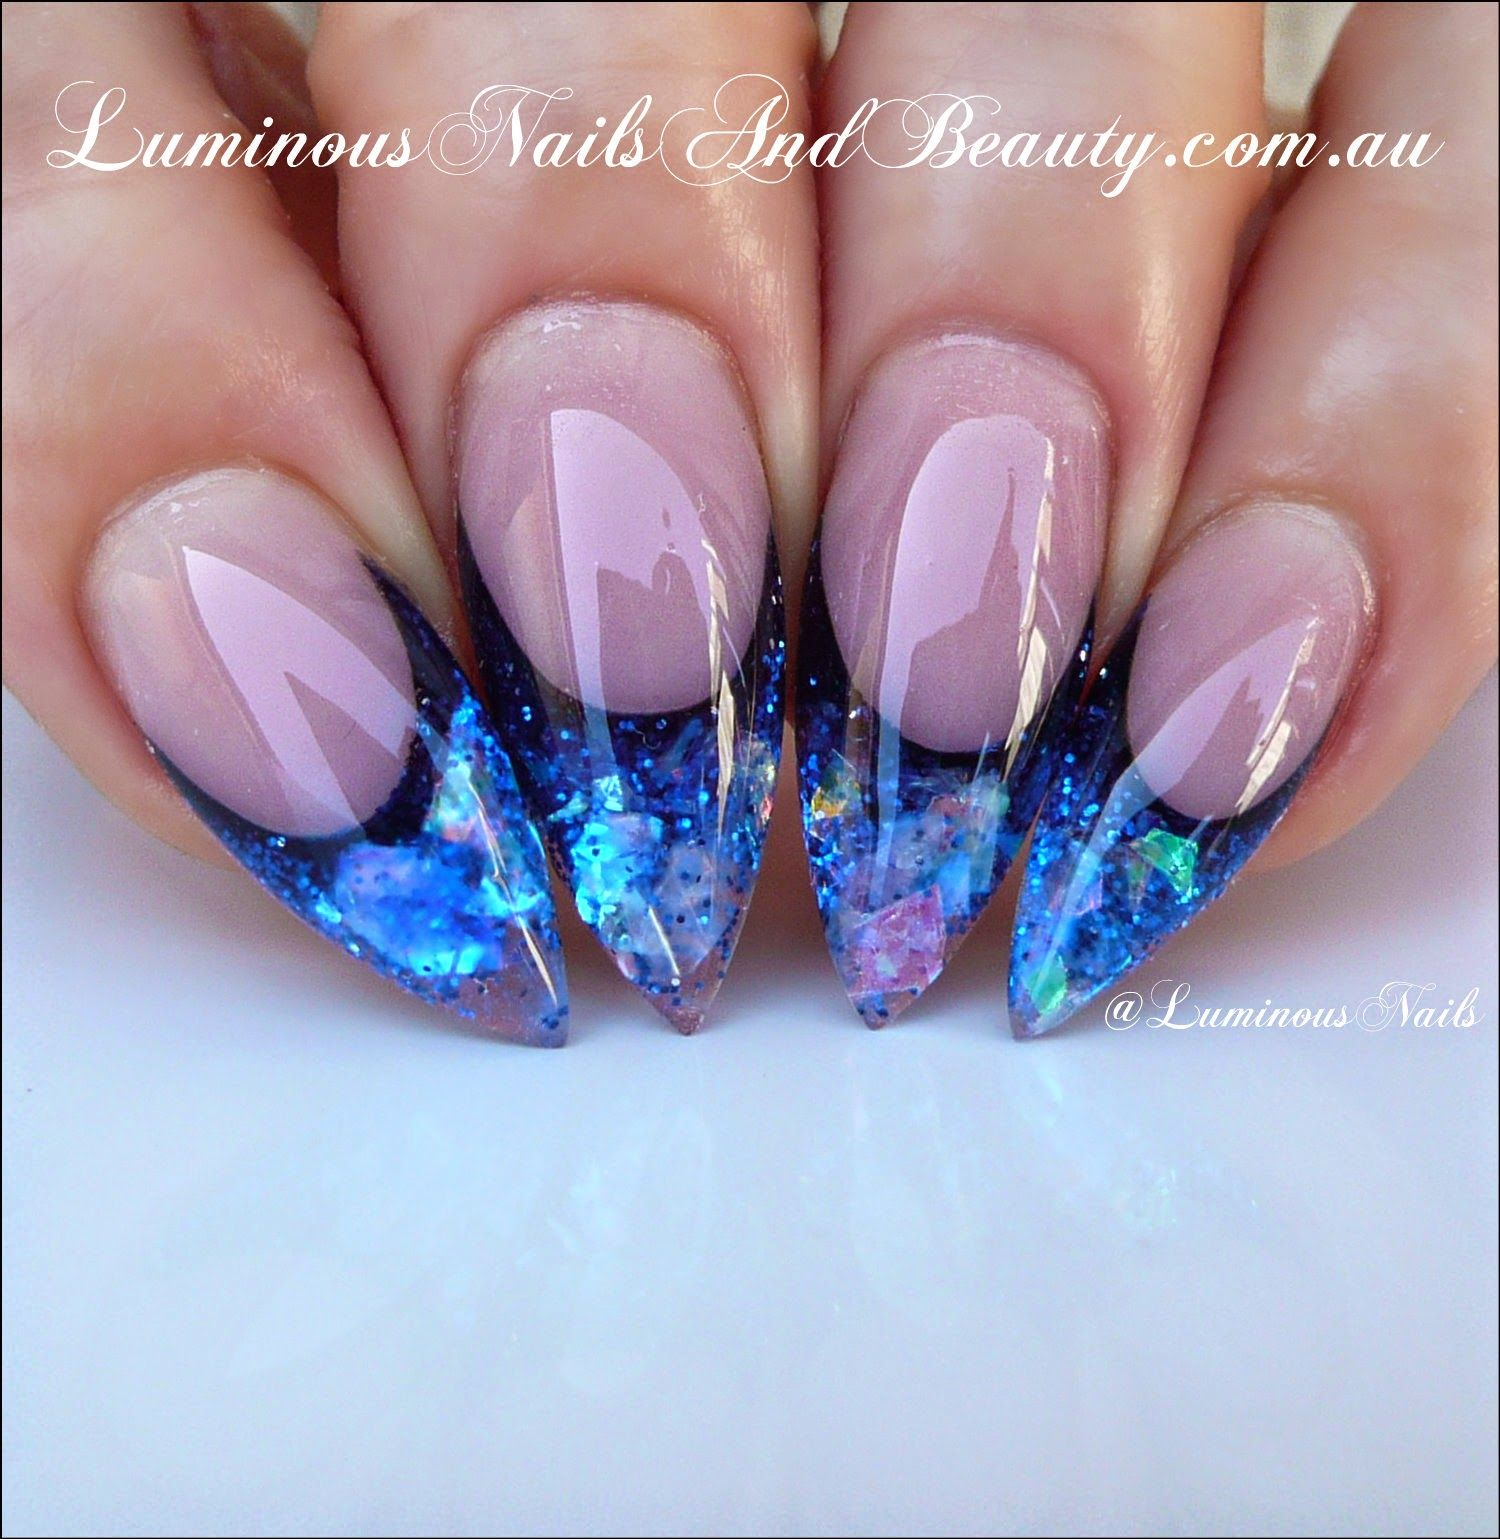 Luminous Nails: Luminous Sapphire Blue Acrylic Nails - Step by Step ...